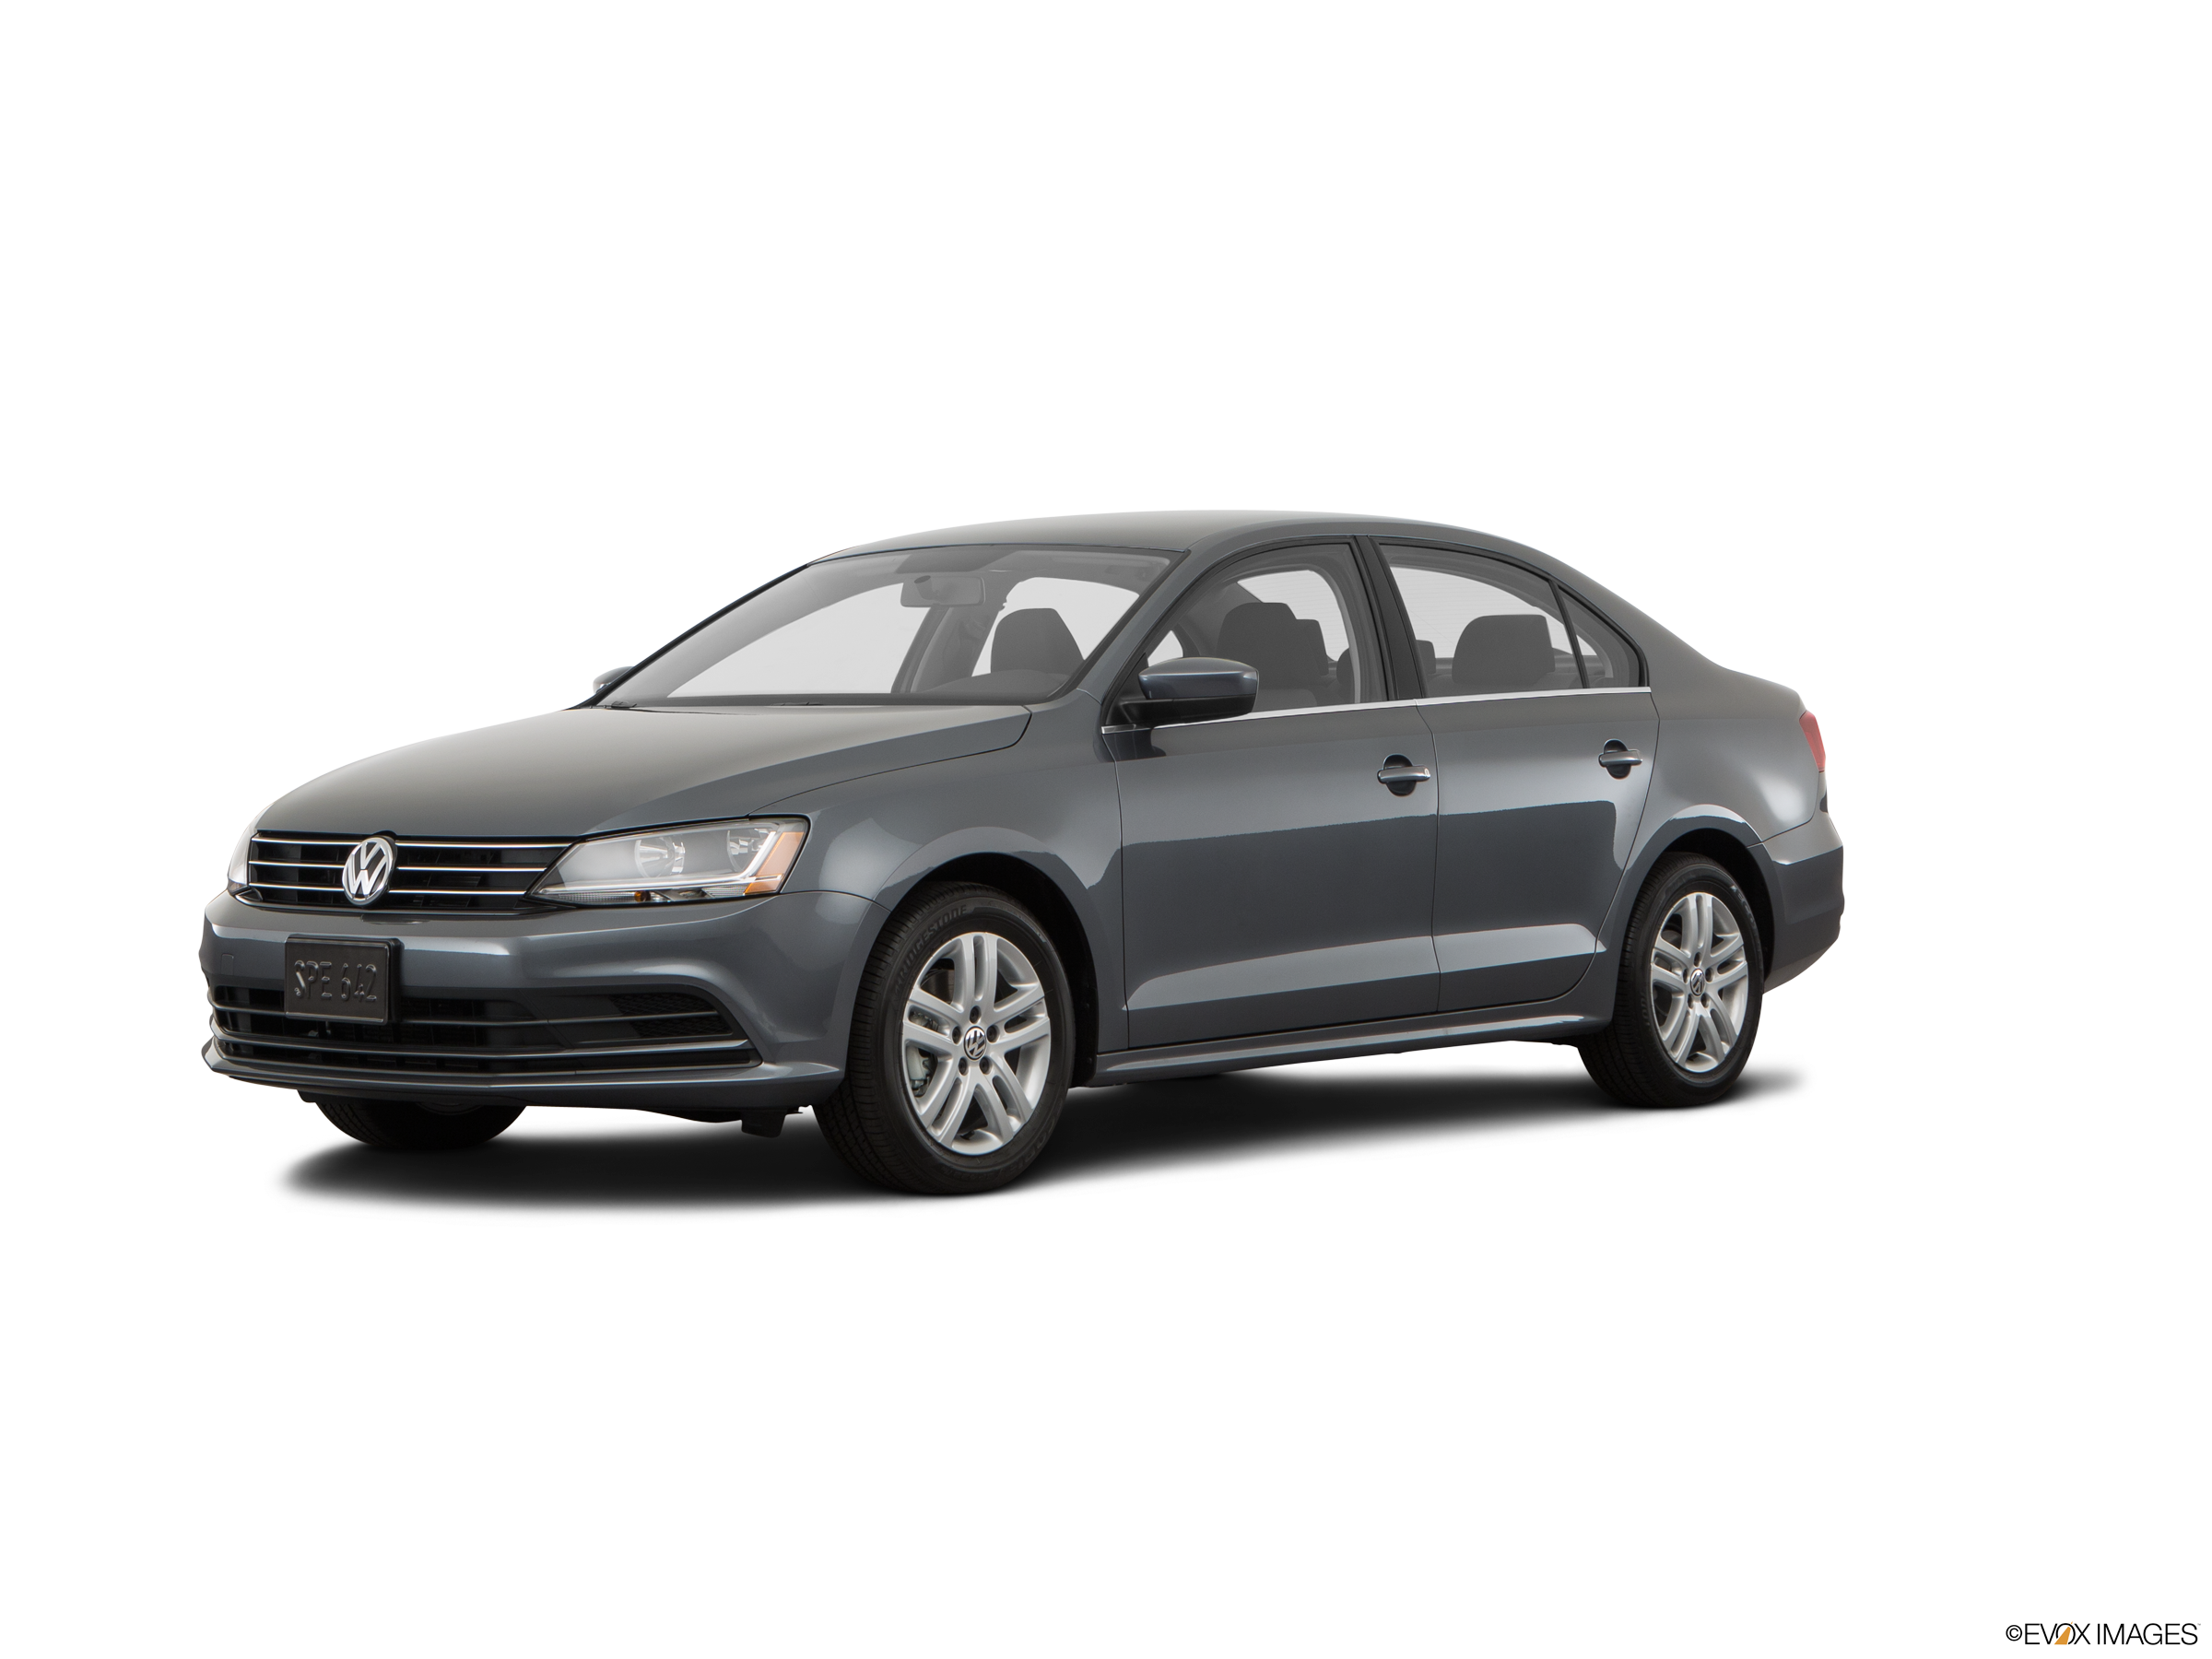 2018 Volkswagen Jetta Pricing, Reviews & Ratings | Kelley